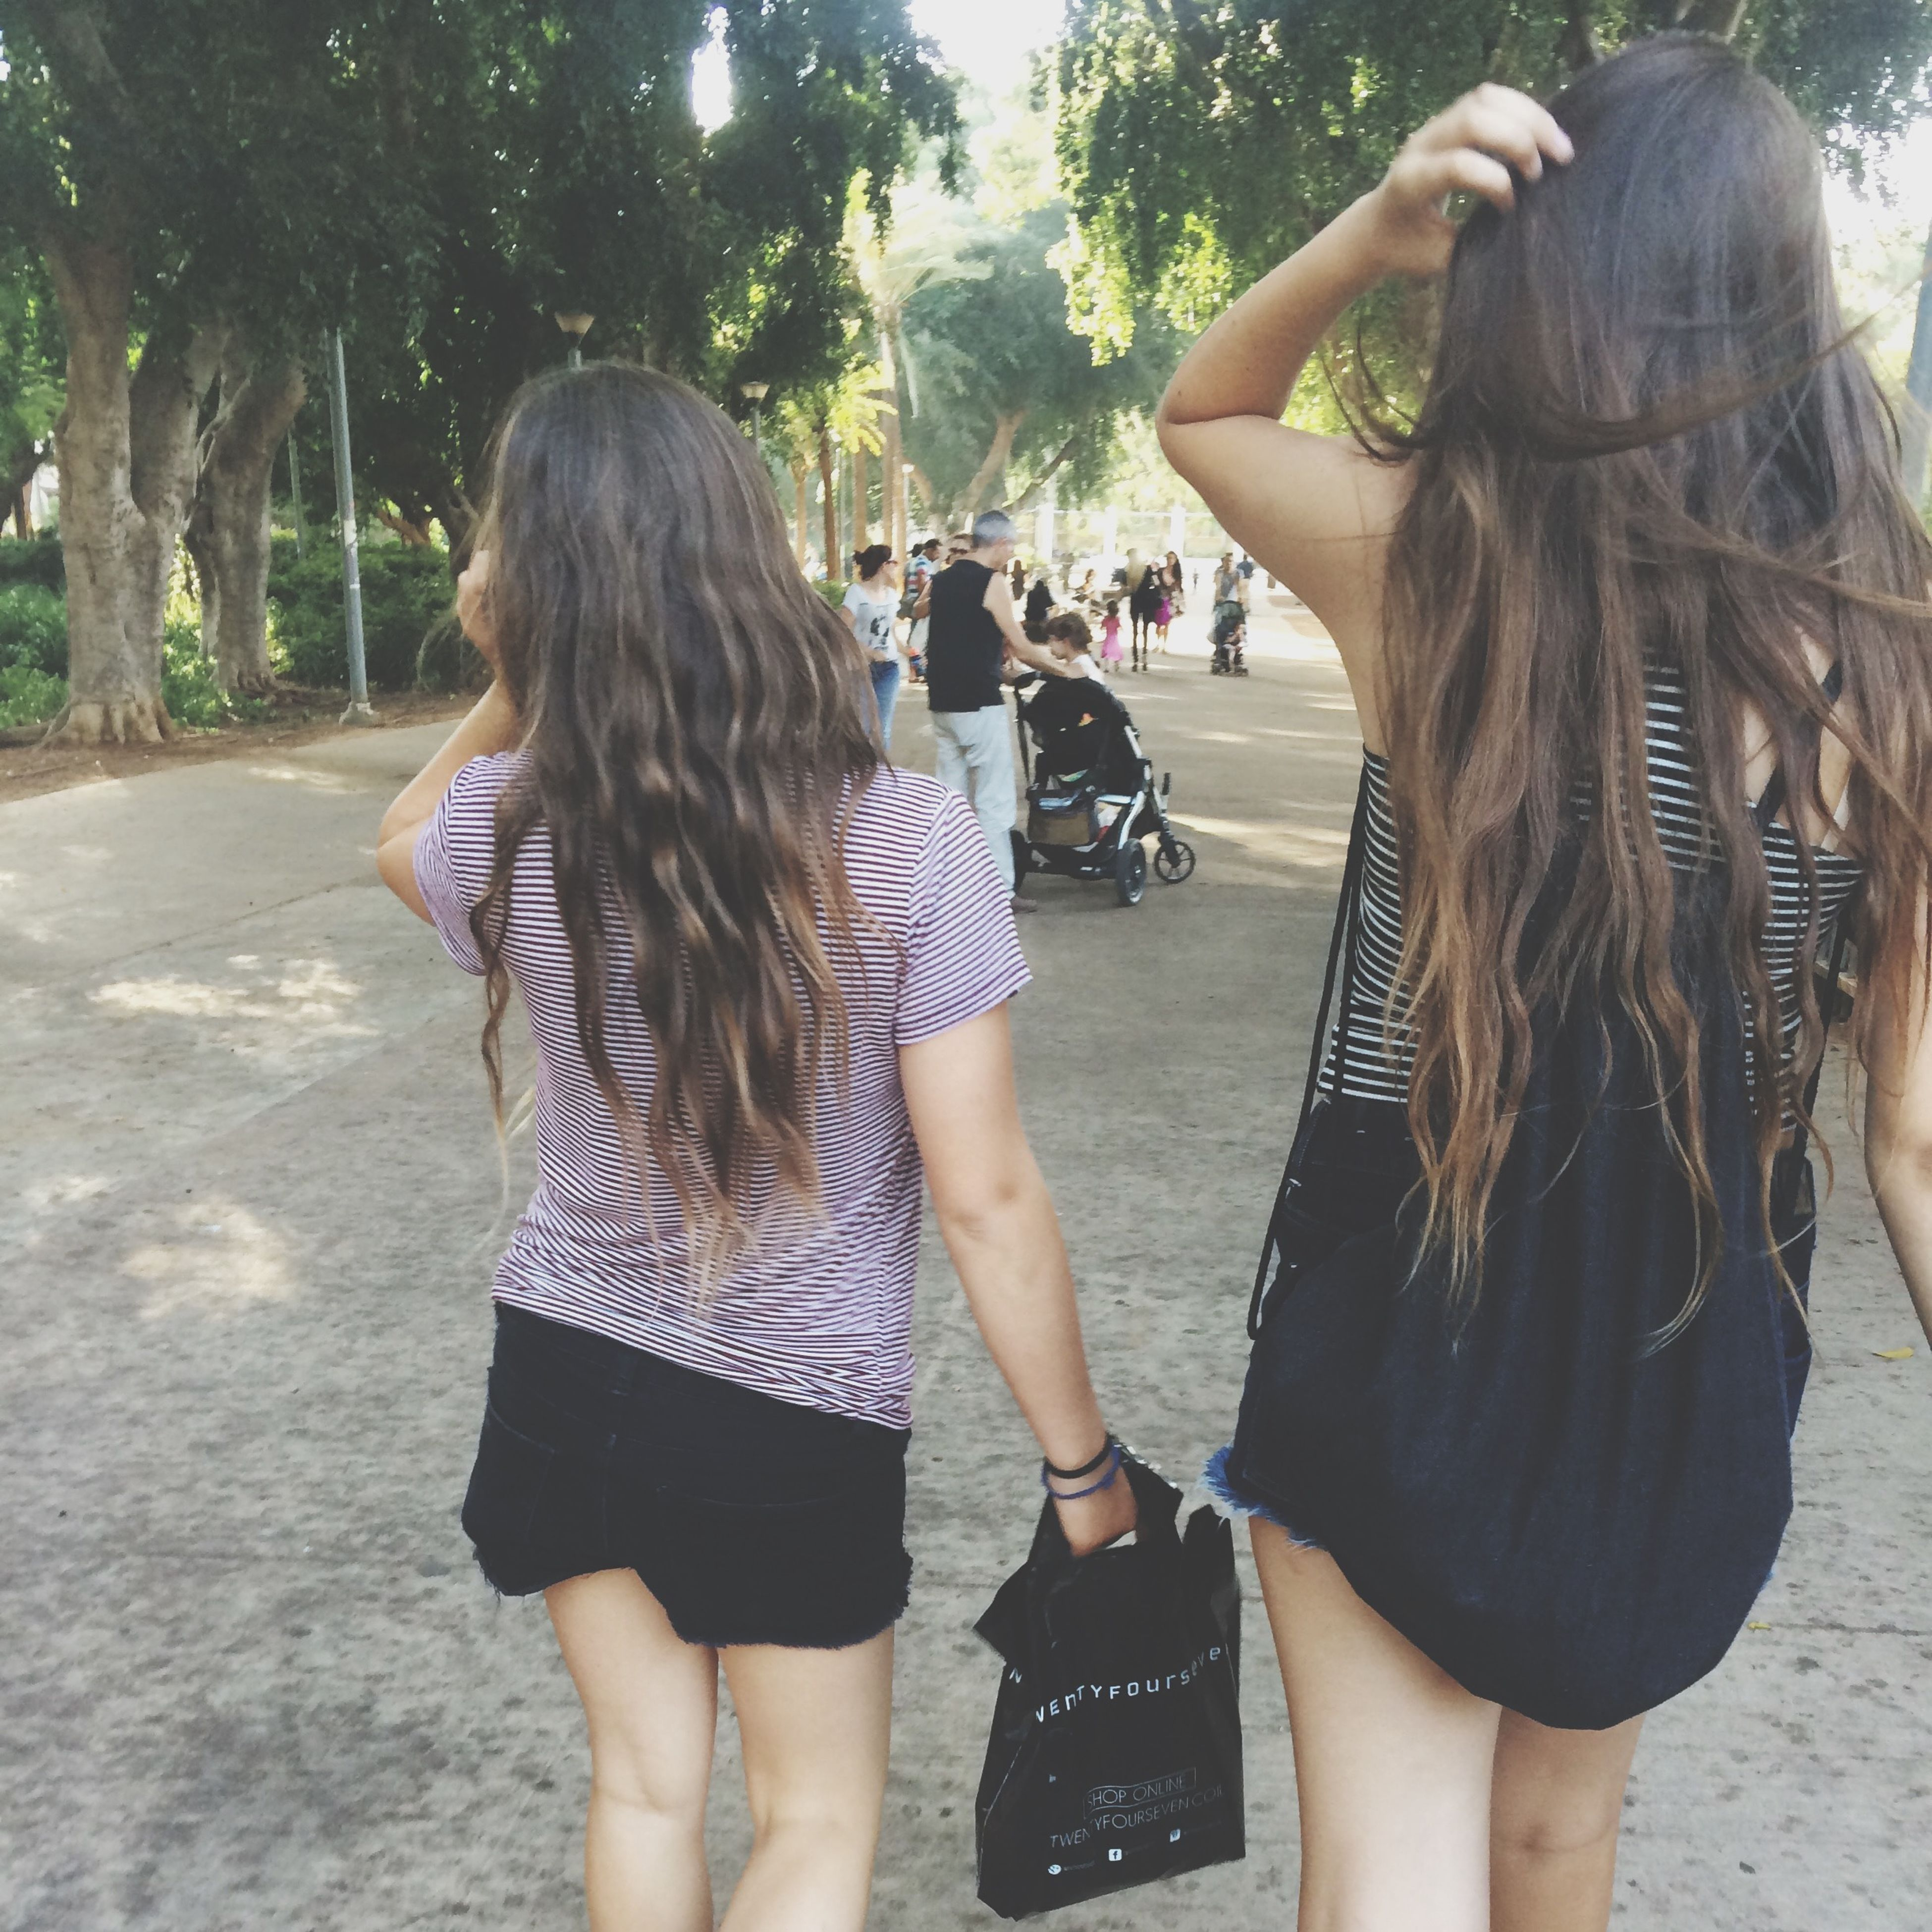 lifestyles, leisure activity, person, togetherness, casual clothing, rear view, standing, bonding, friendship, young women, tree, three quarter length, sunlight, young adult, day, long hair, full length